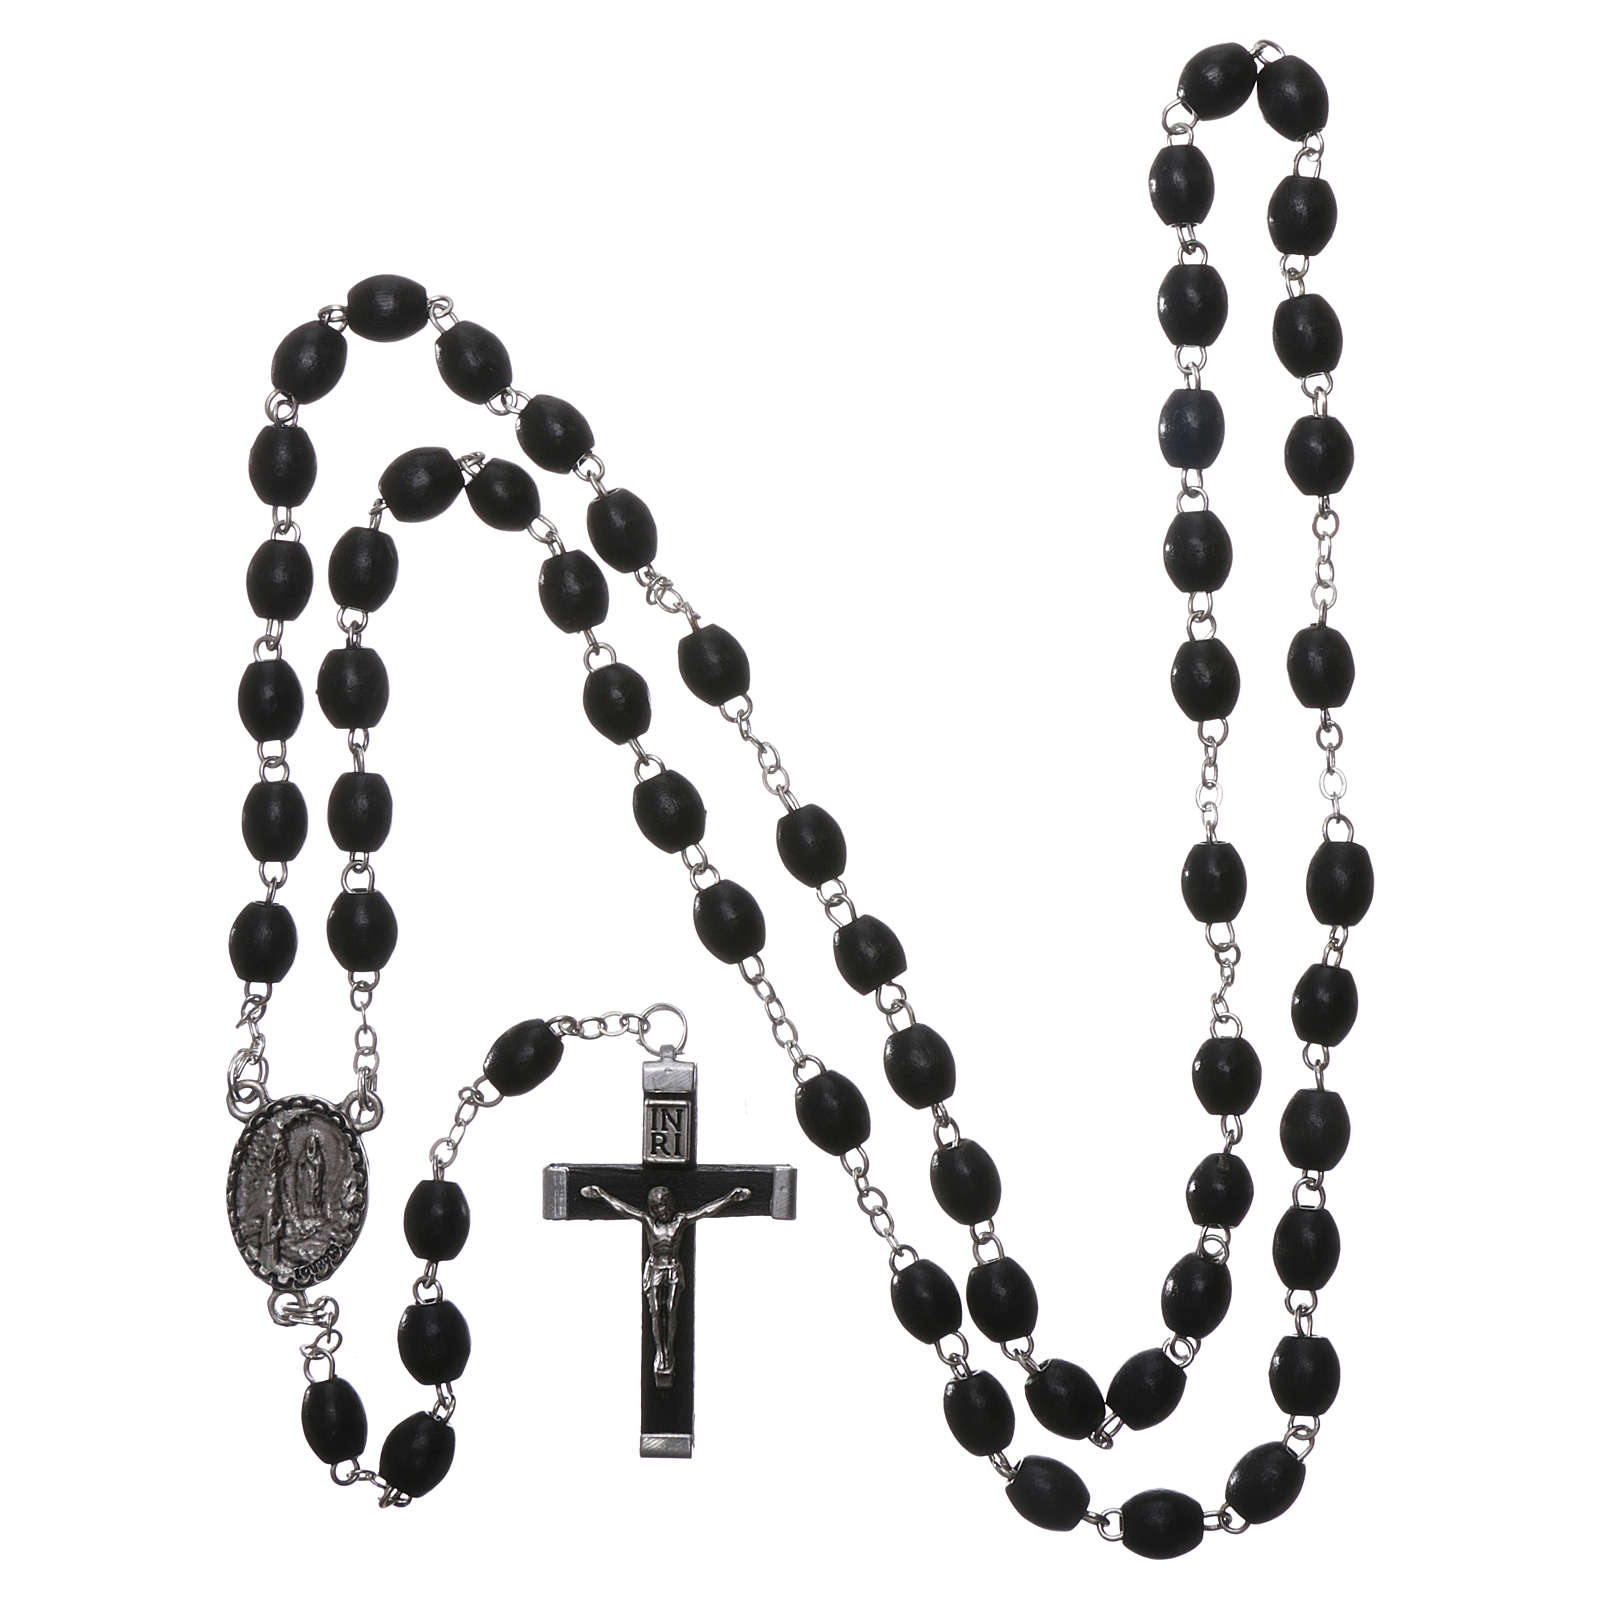 Our Lady of Lourdes wooden rosary 4 mm beads, black 4